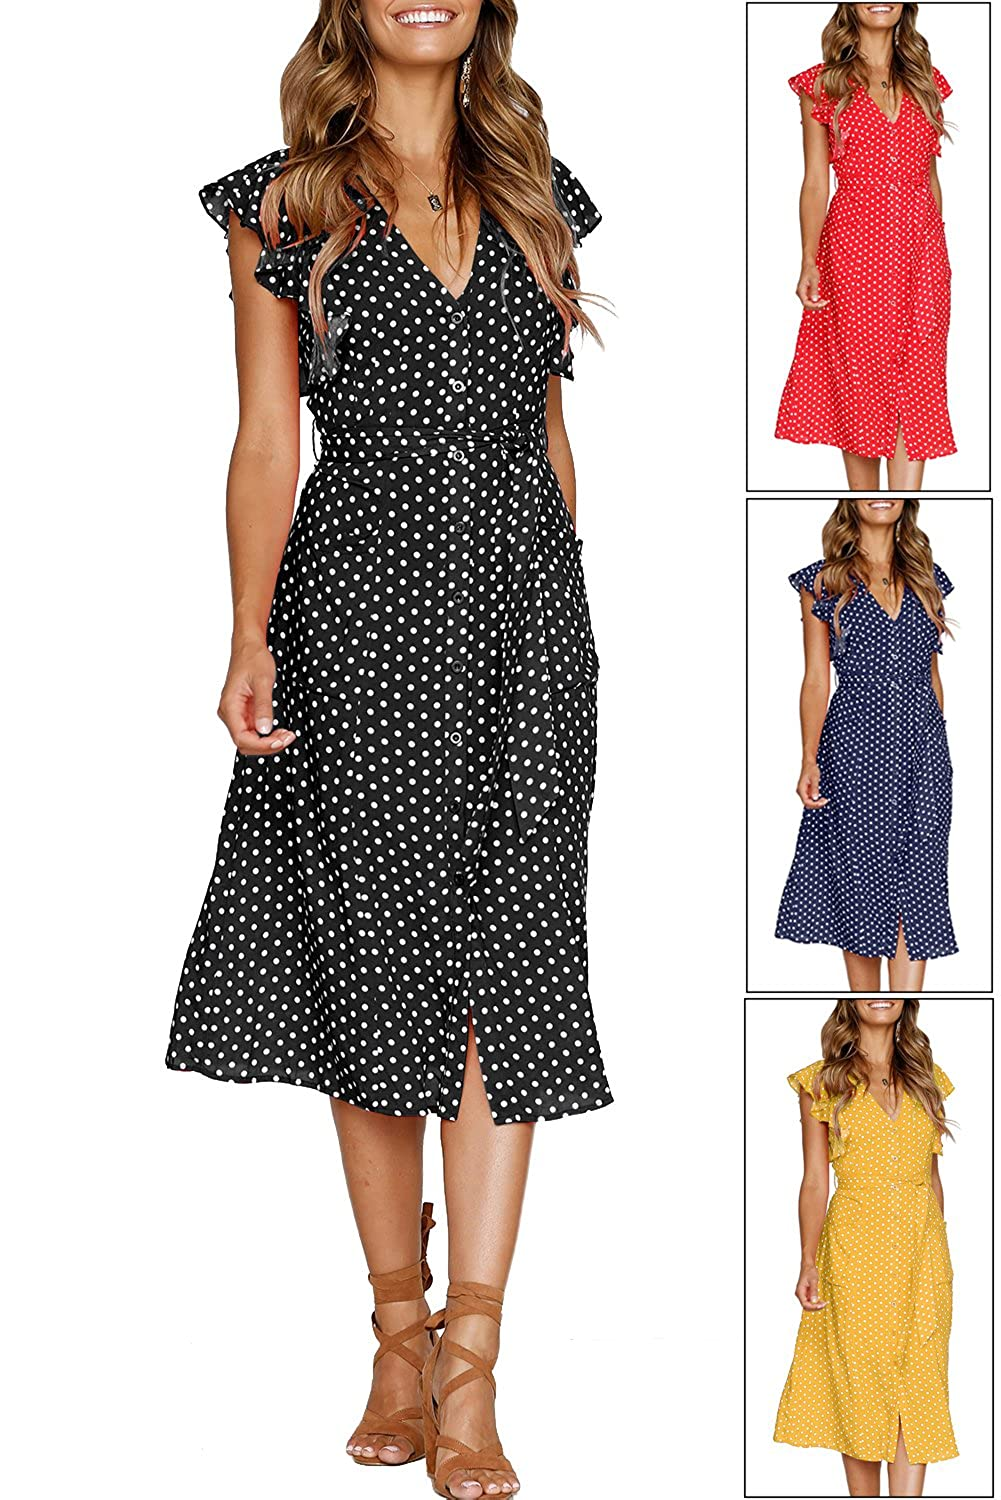 a93f871fa2d02 MITILLY Women's Summer Boho Polka Dot Sleeveless V Neck Swing Midi Dress  with Pockets at Amazon Women's Clothing store: